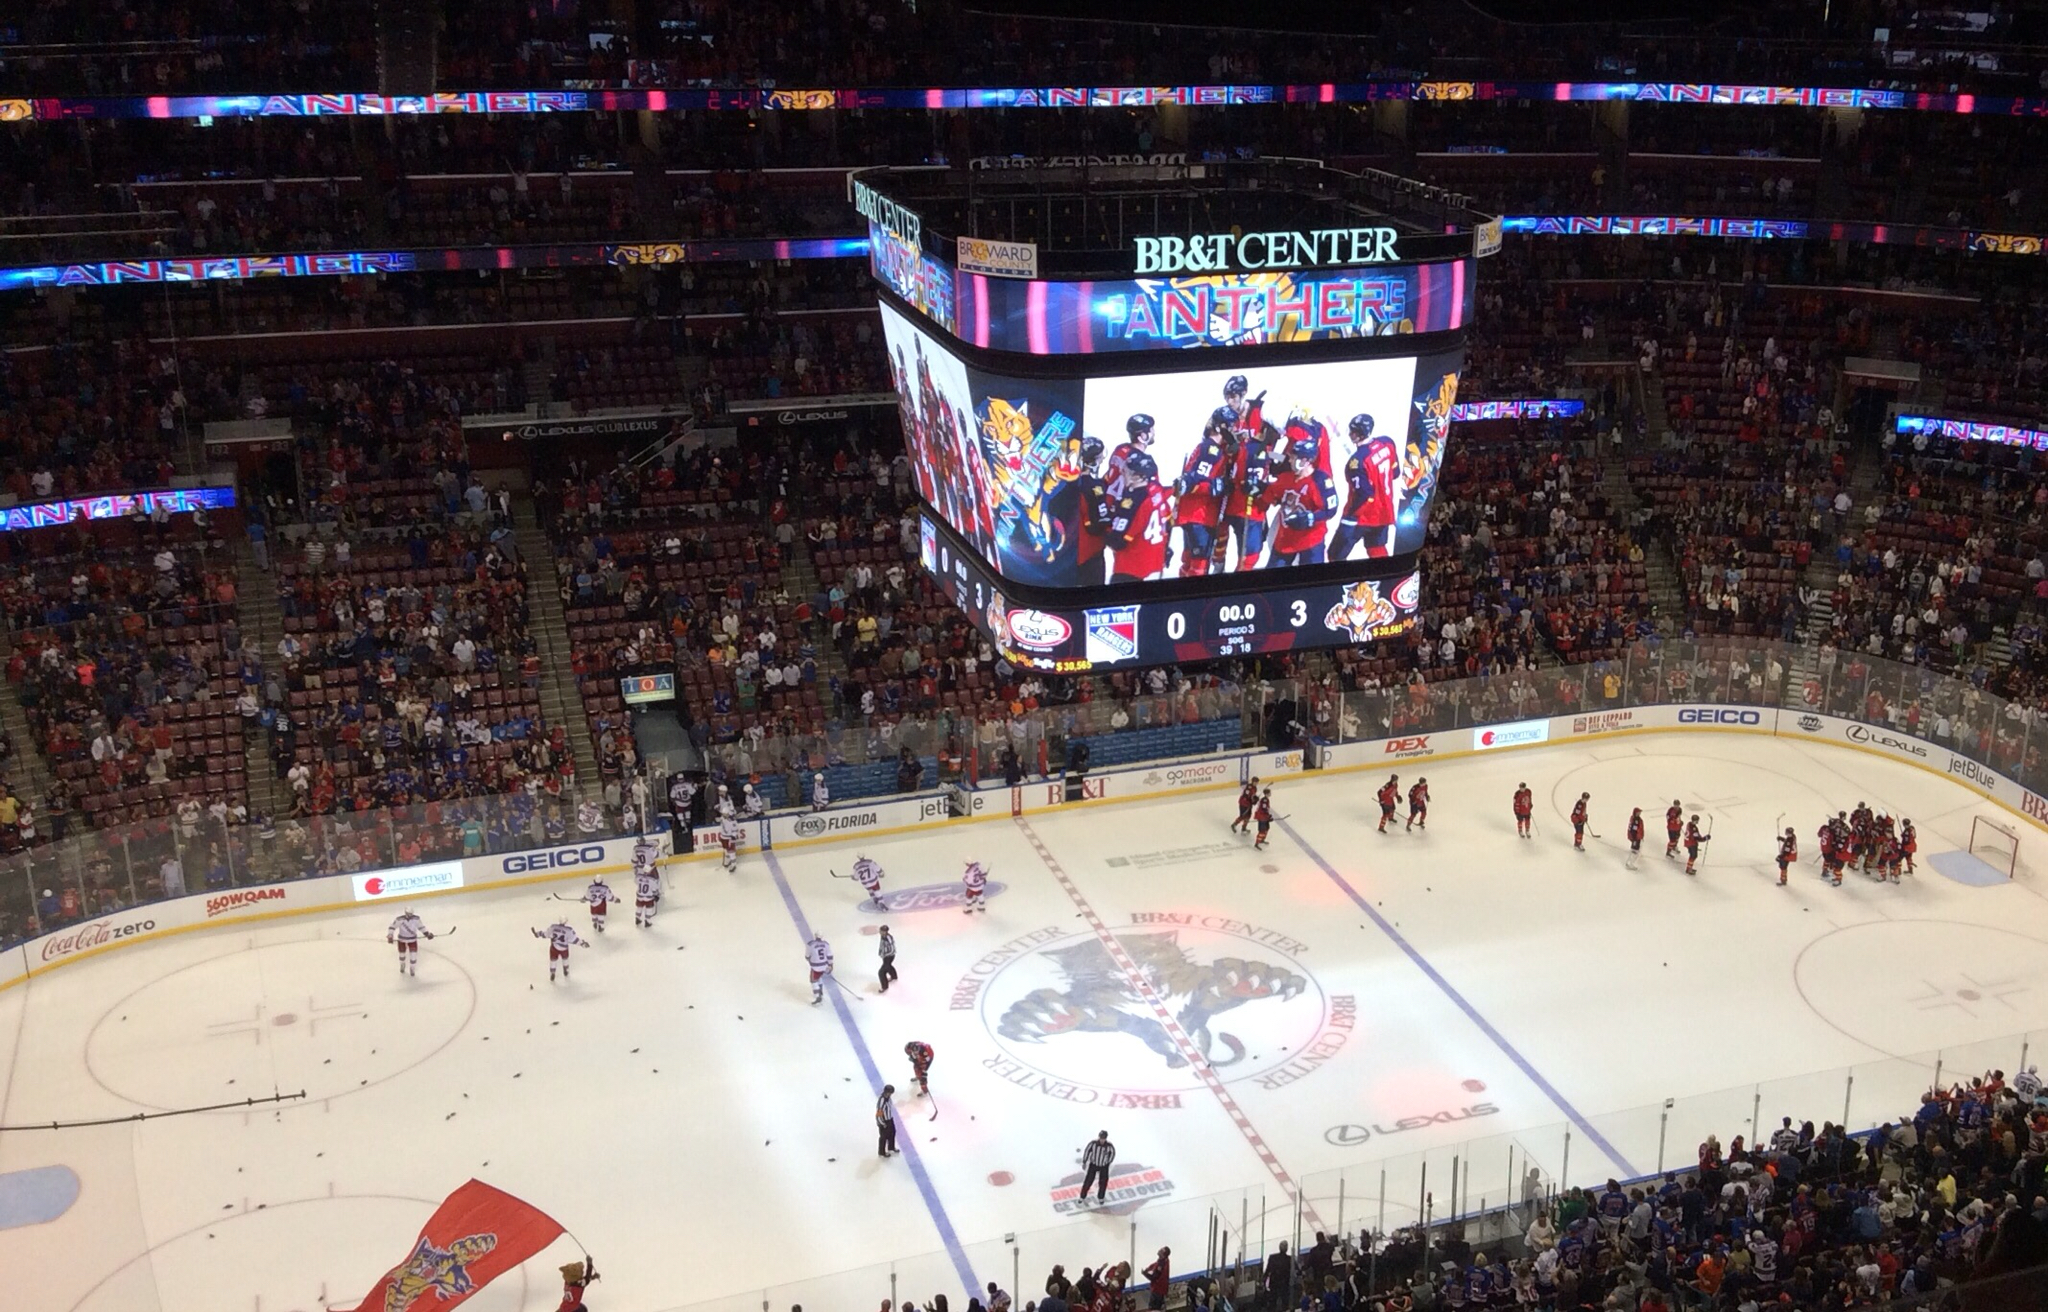 Panthers Win Again Florida Panthers Set Franchise Record With